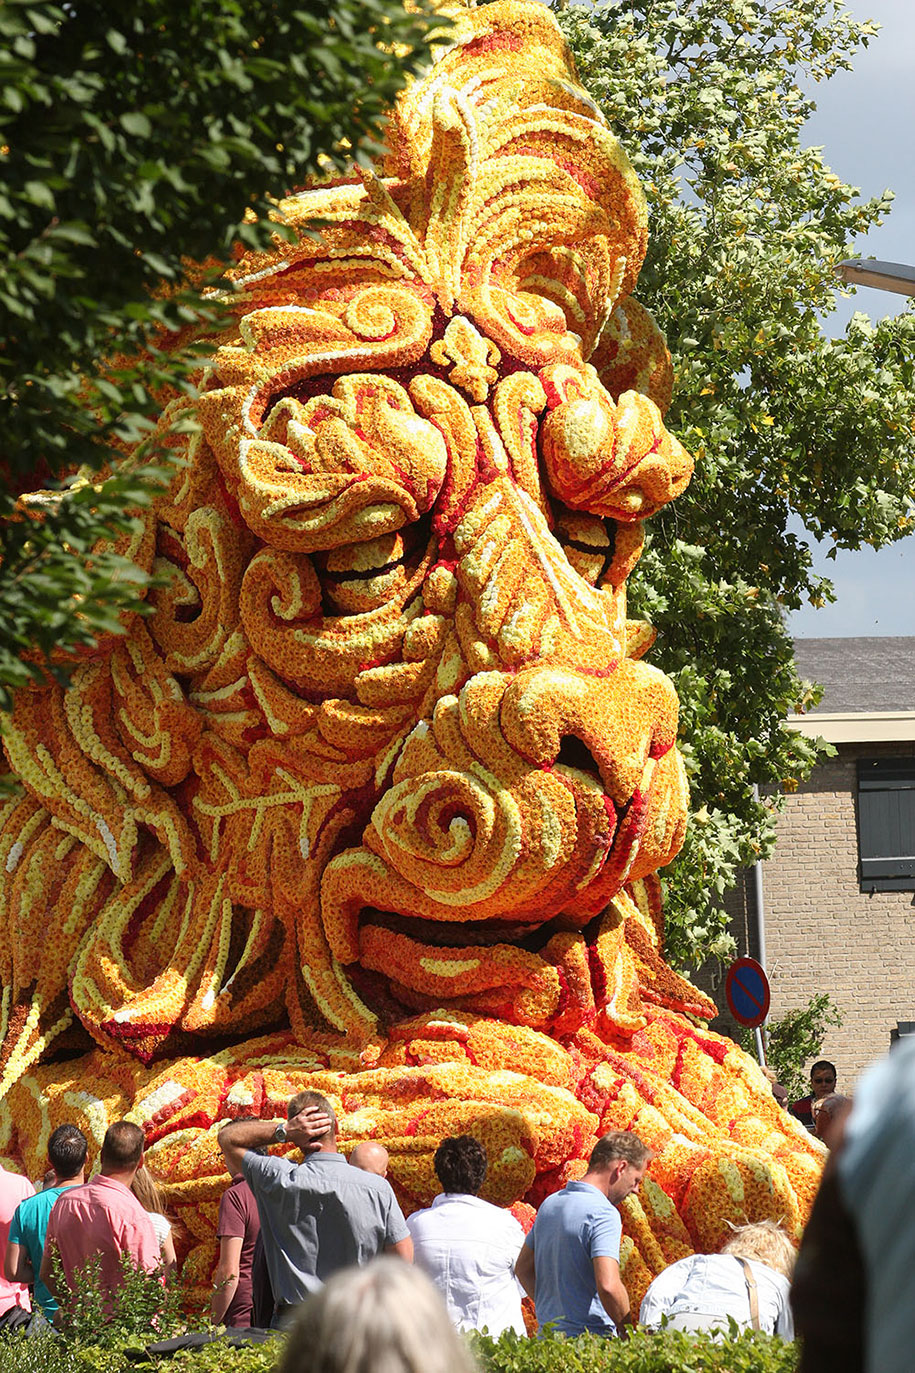 giant-flower-sculpture-parade-corso-zundert-2016-netherlands-62